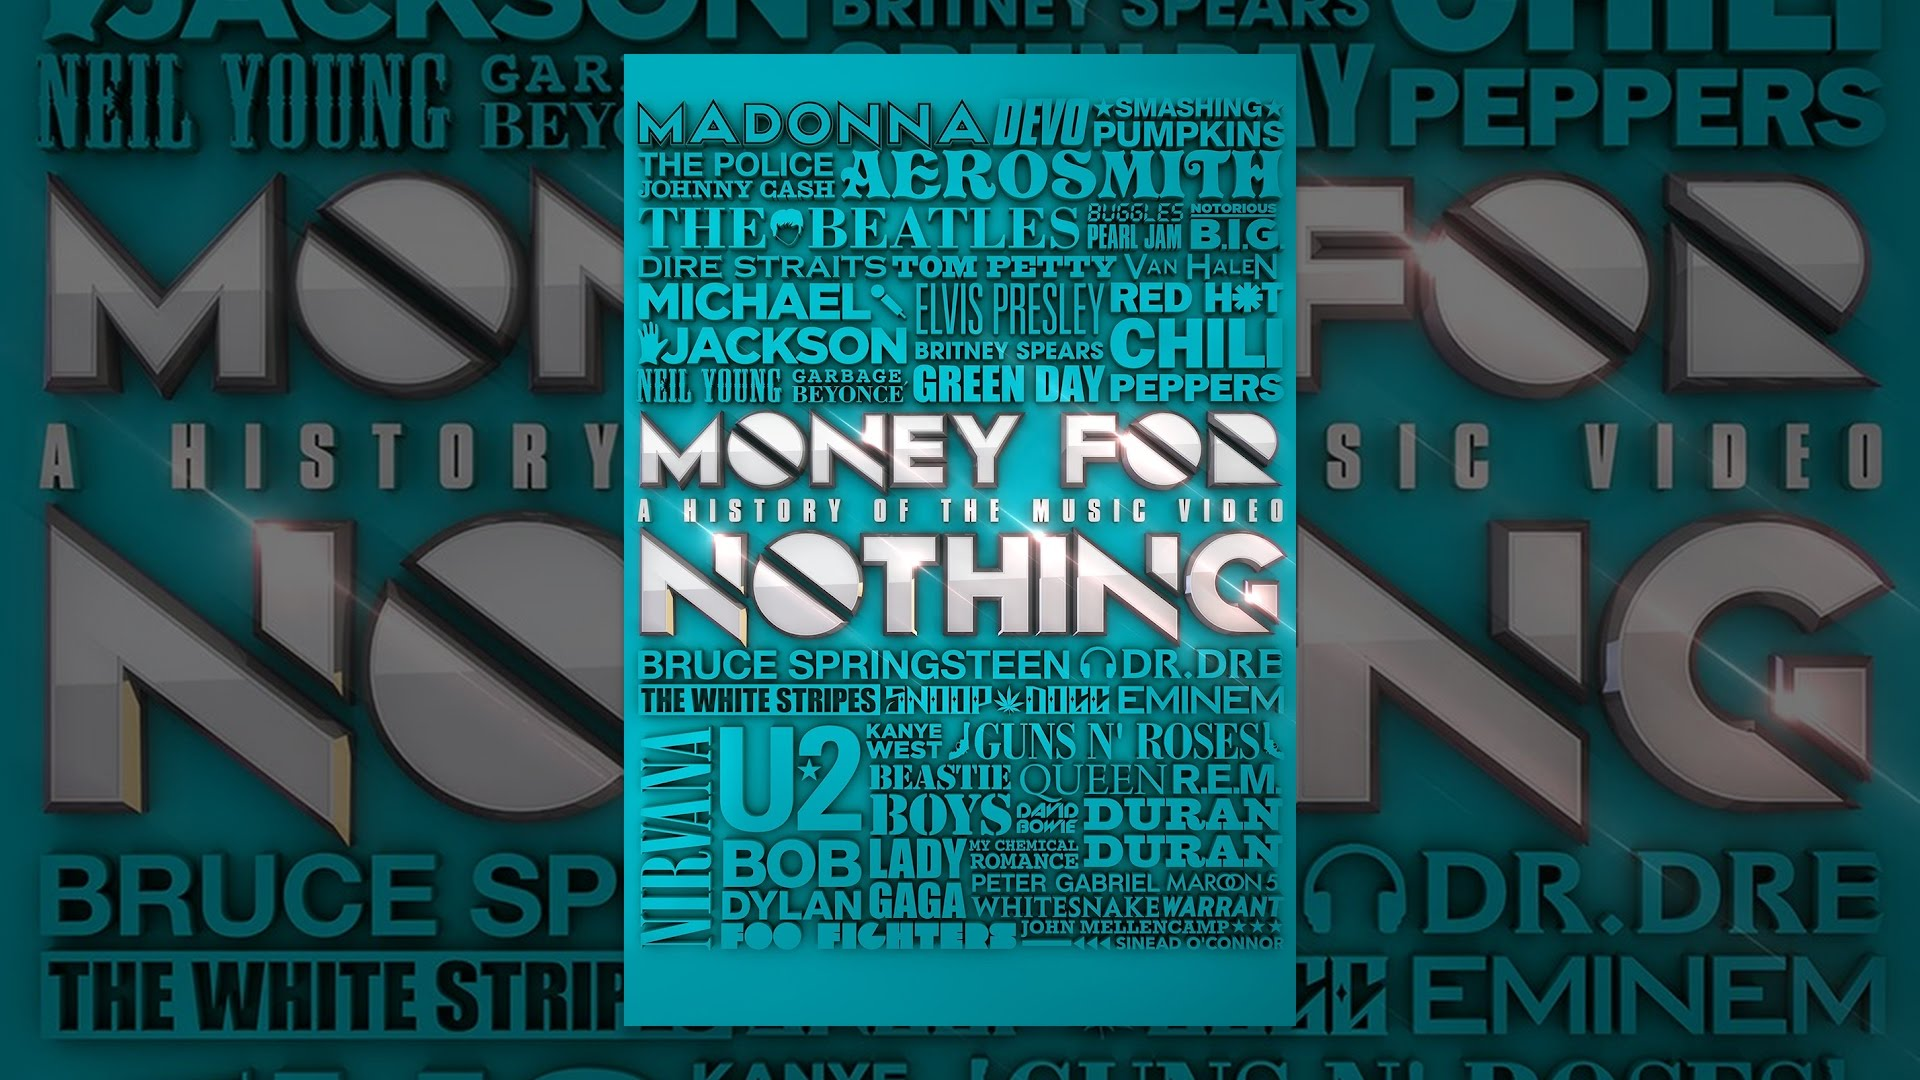 Money for Nothing: A History of the Music Video